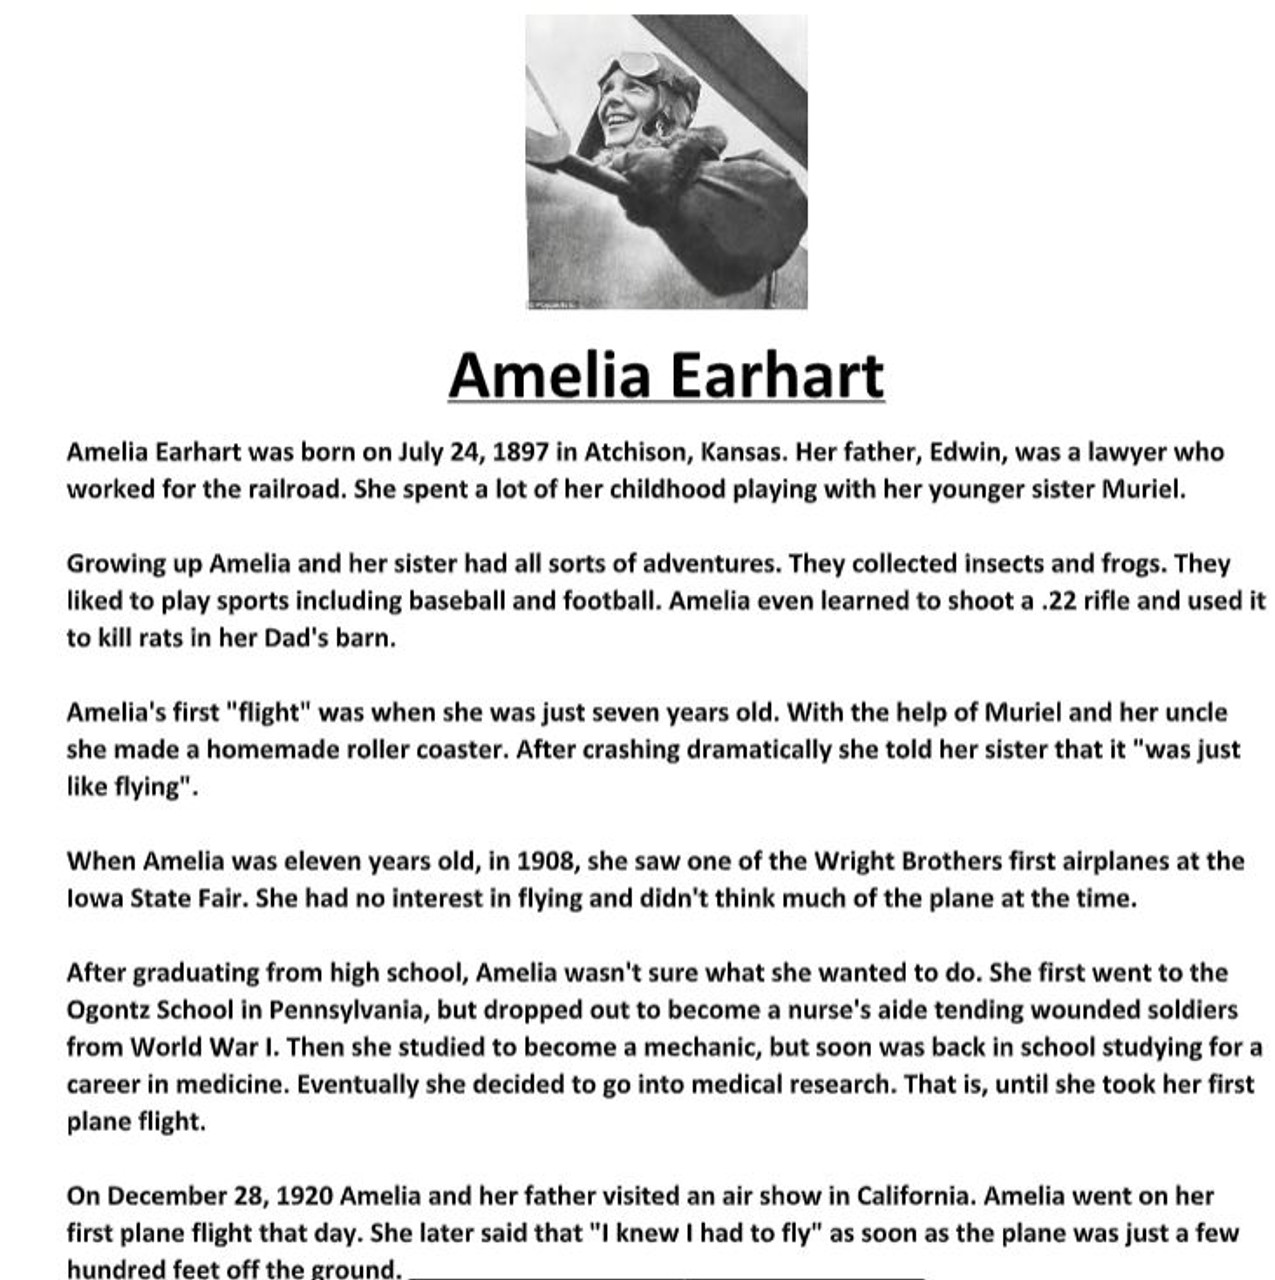 medium resolution of Amelia Earhart Biography and Assignment Worksheet - Amped Up Learning